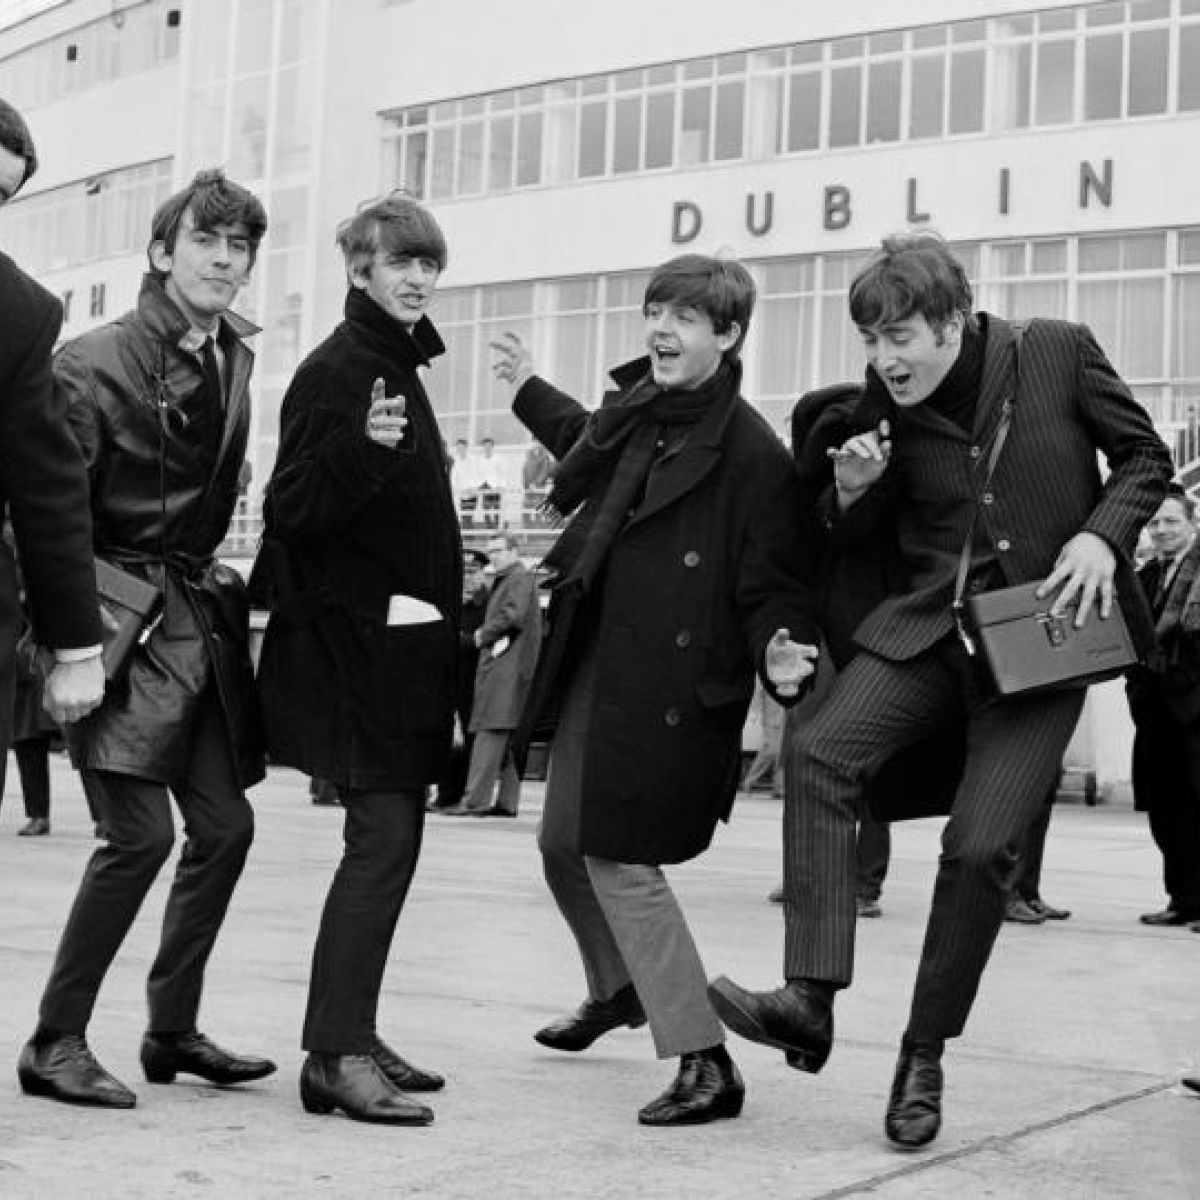 Beatlemania: the Fab Four's Irish concerts, 50 years on